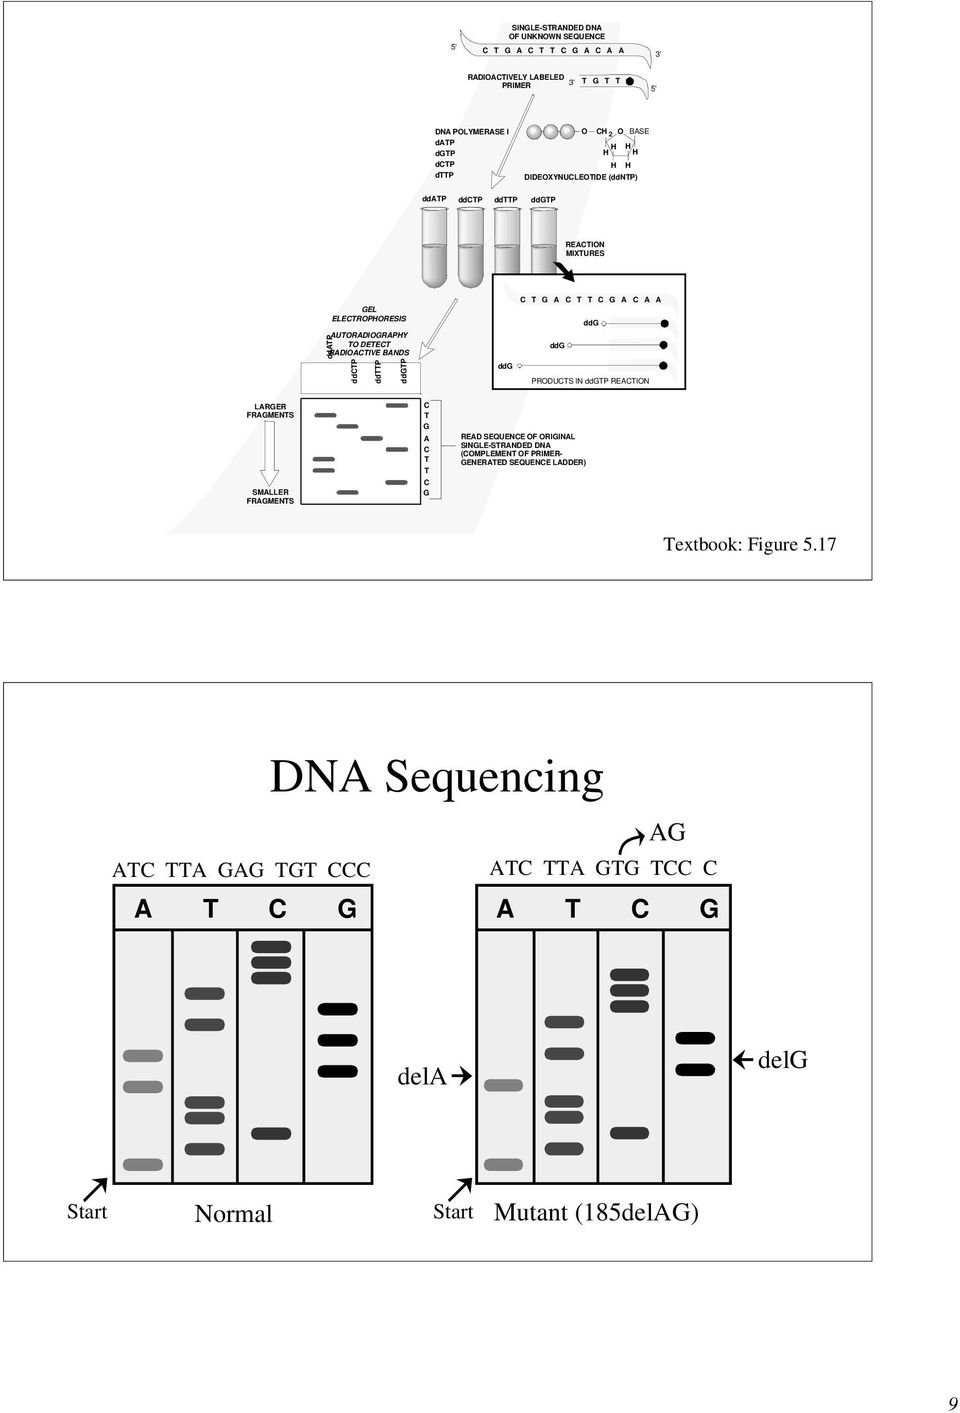 ddgtp T G A T T G A A A ddg ddg ddg PRODUTS IN ddgtp REATION LARGER FRAGMENTS SMALLER FRAGMENTS T G A T T G READ SEQUENE OF ORIGINAL SINGLE-STRANDED DNA